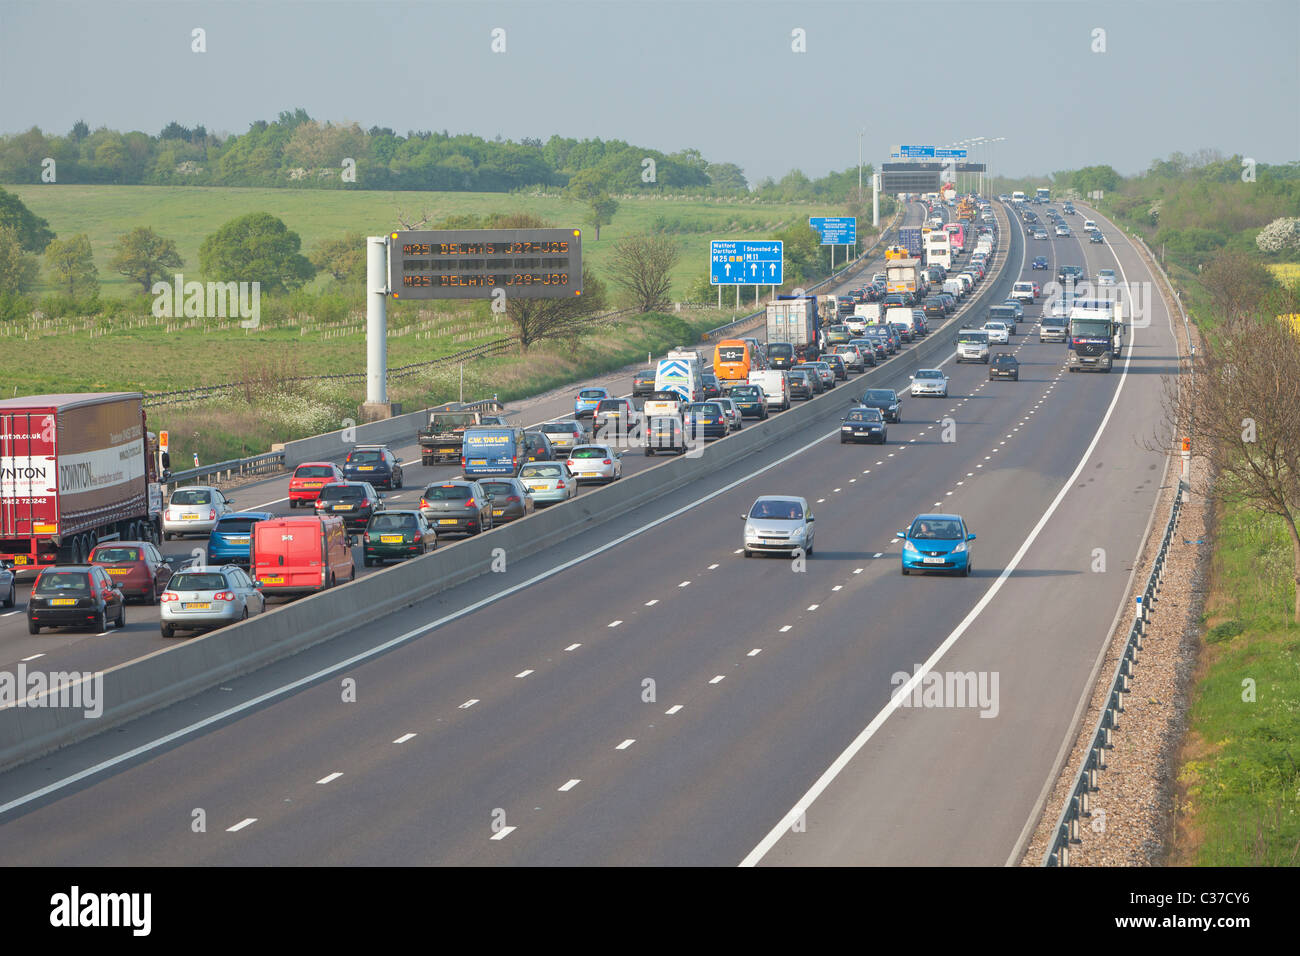 Traffic congestion on the M11 motorway before junction with the M25, Essex, England - Stock Image